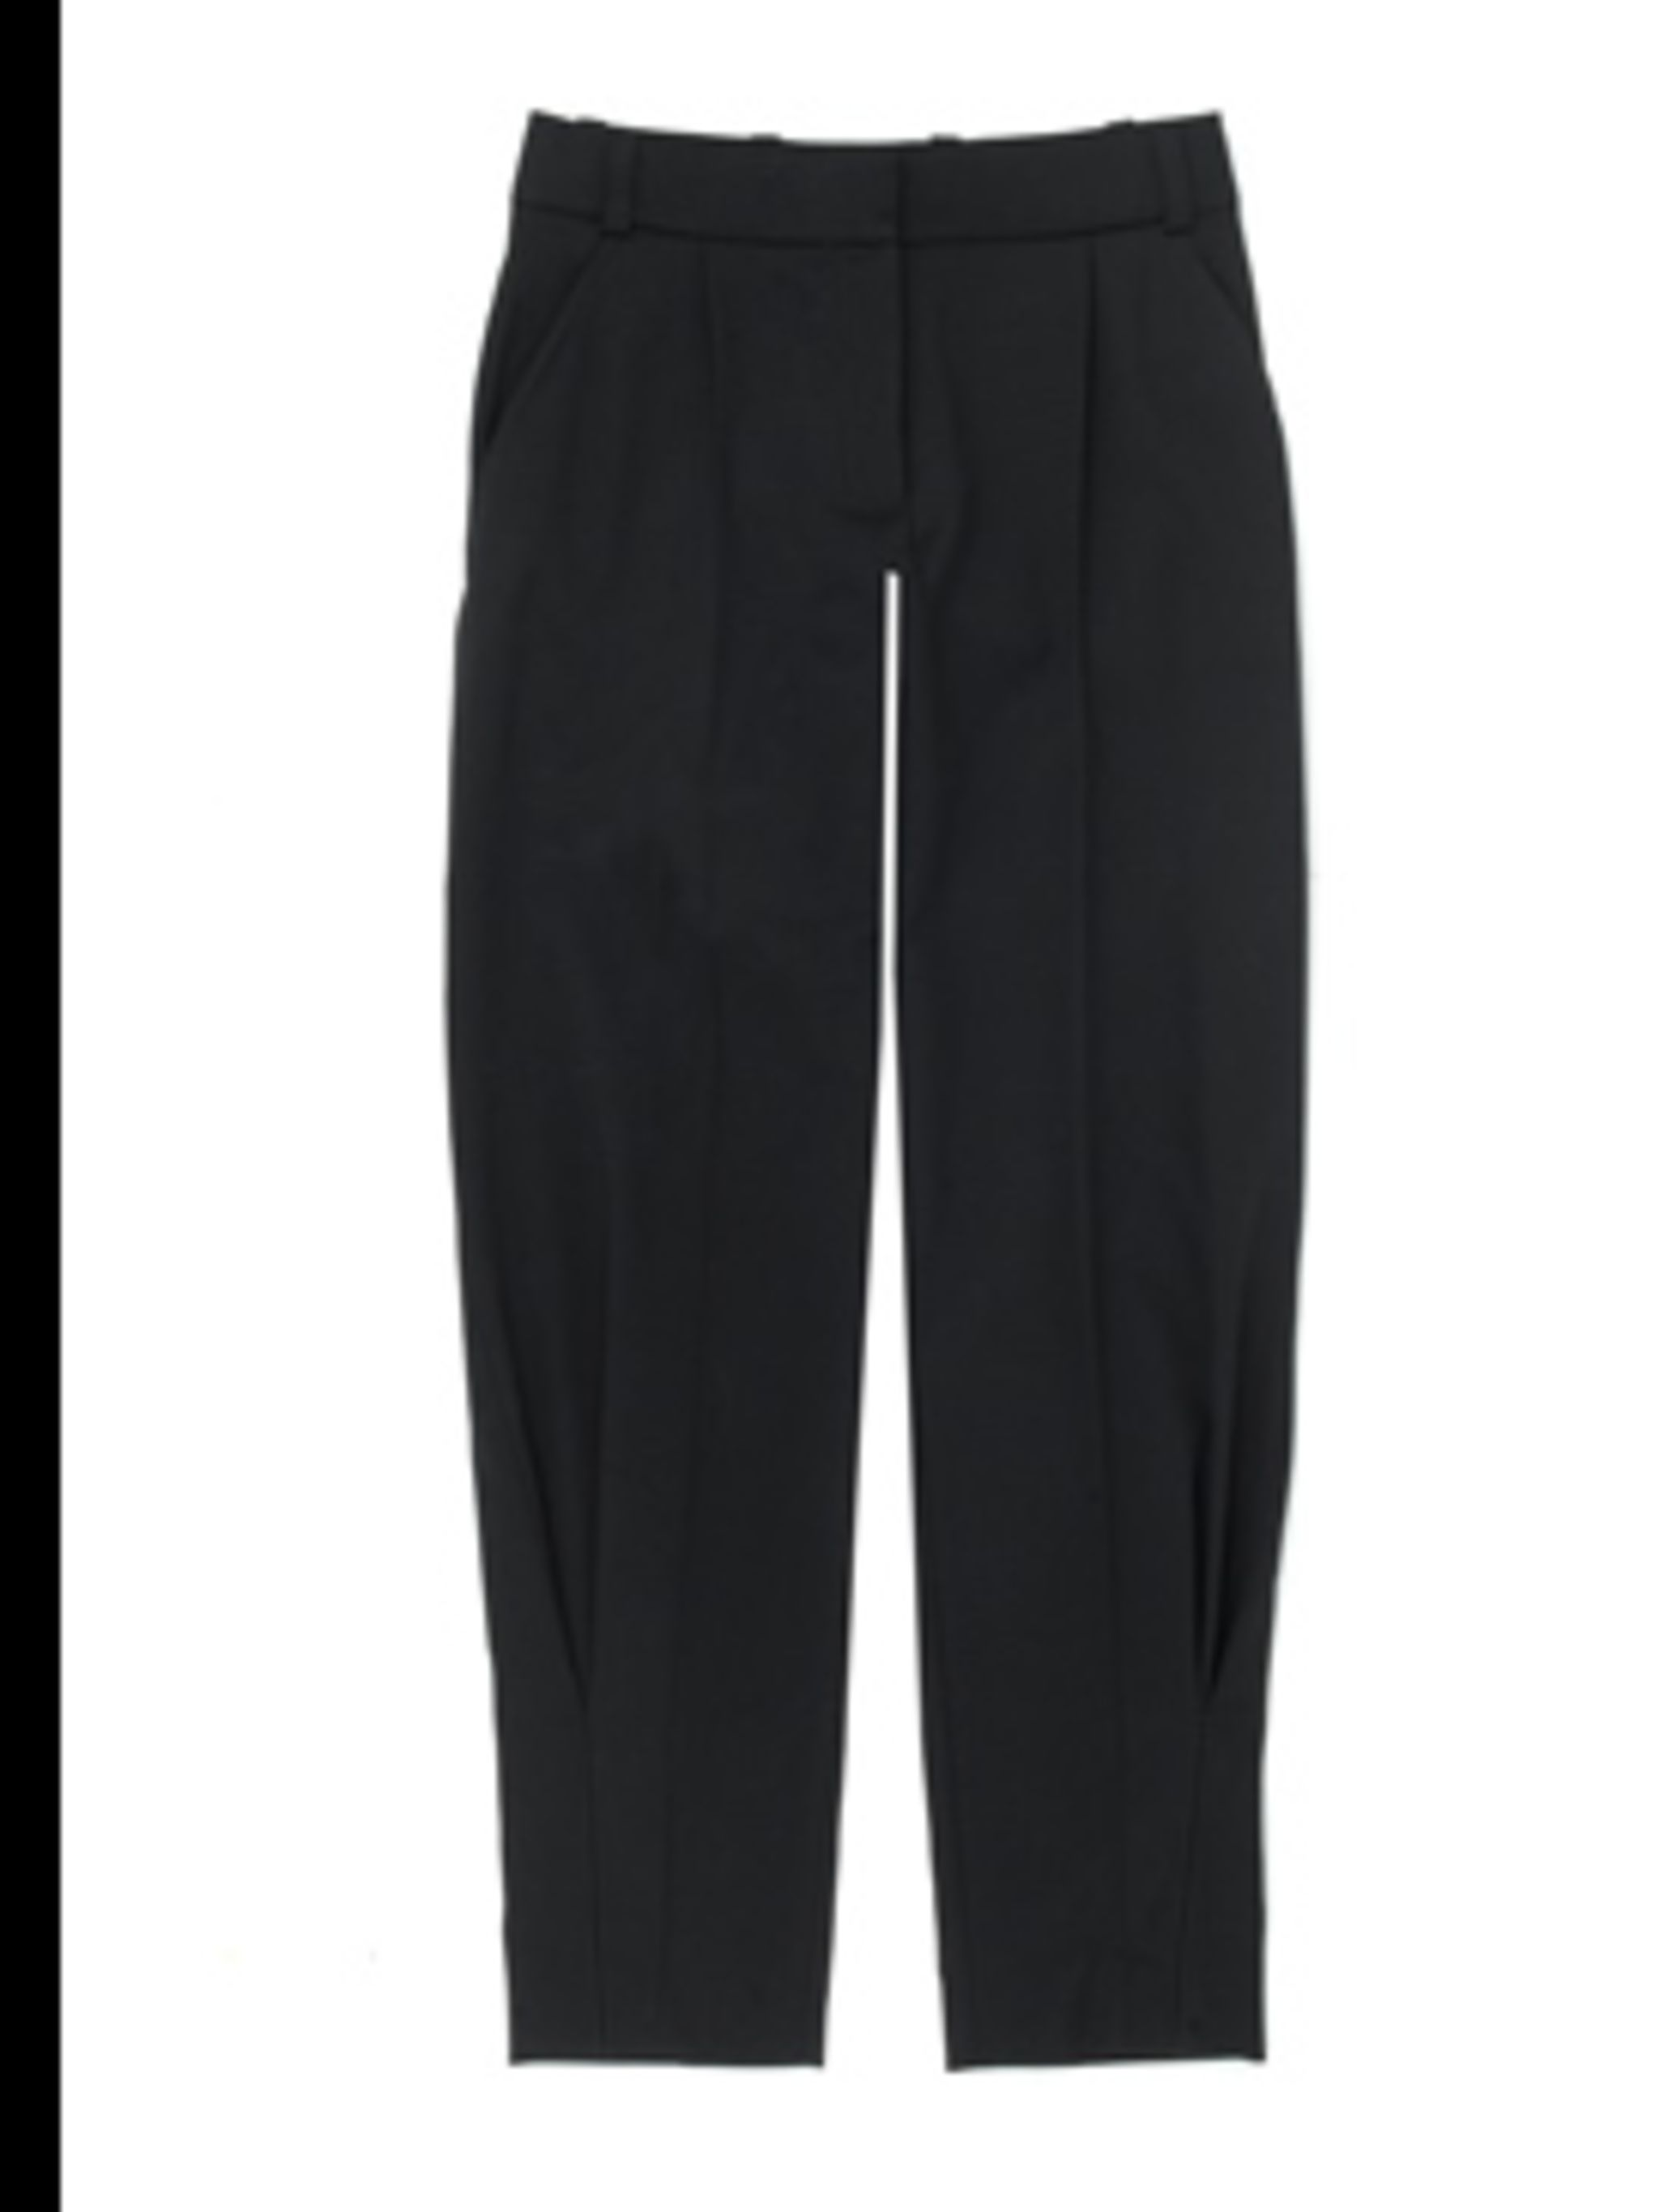 <p>The season's must-have trouser is tailored - get used to the new high waisted, cropped proportions now. Peg-leg trouser, £490.00 by Celine. For stockists call 0207 297 4999</p>